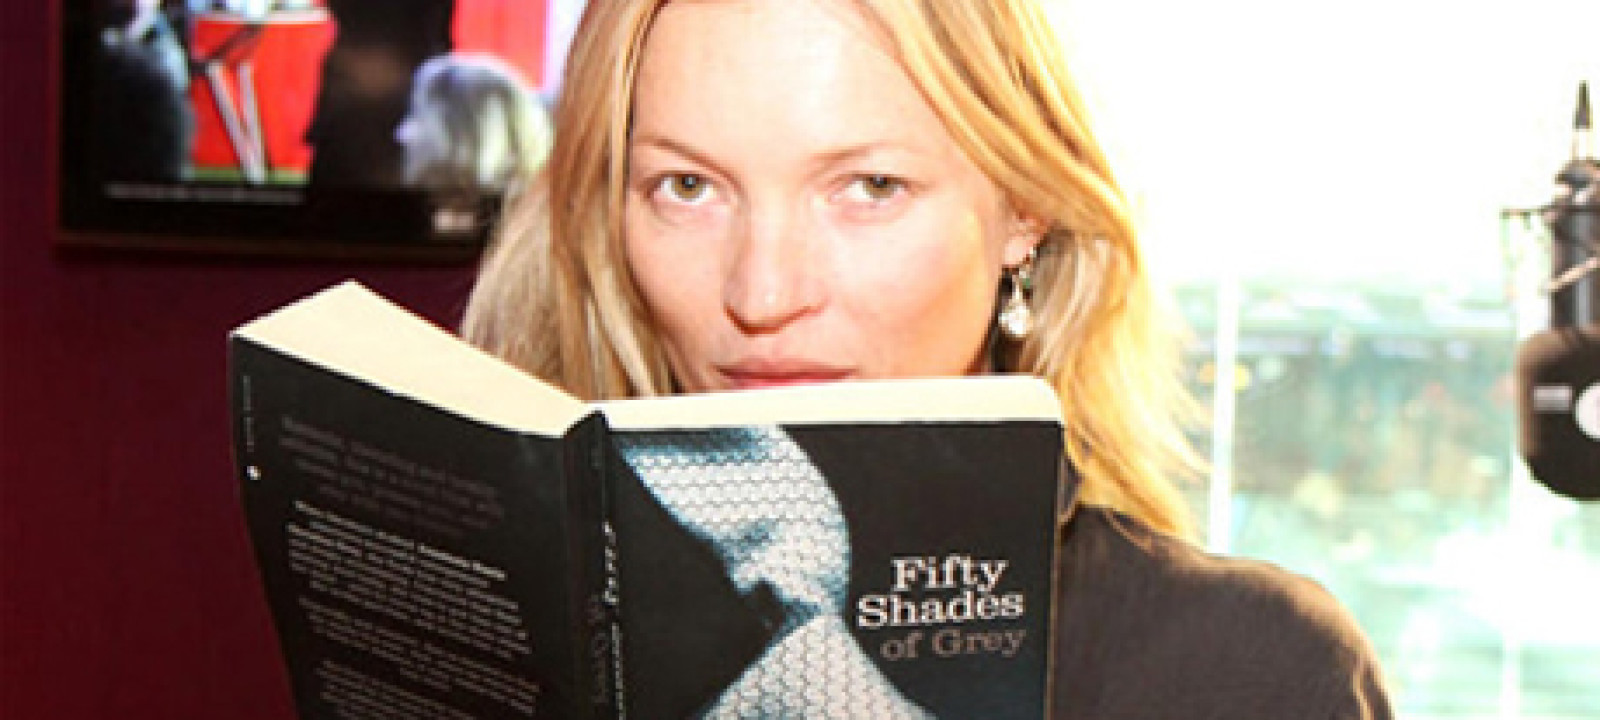 Kate Moss, 50 Shades of Grey